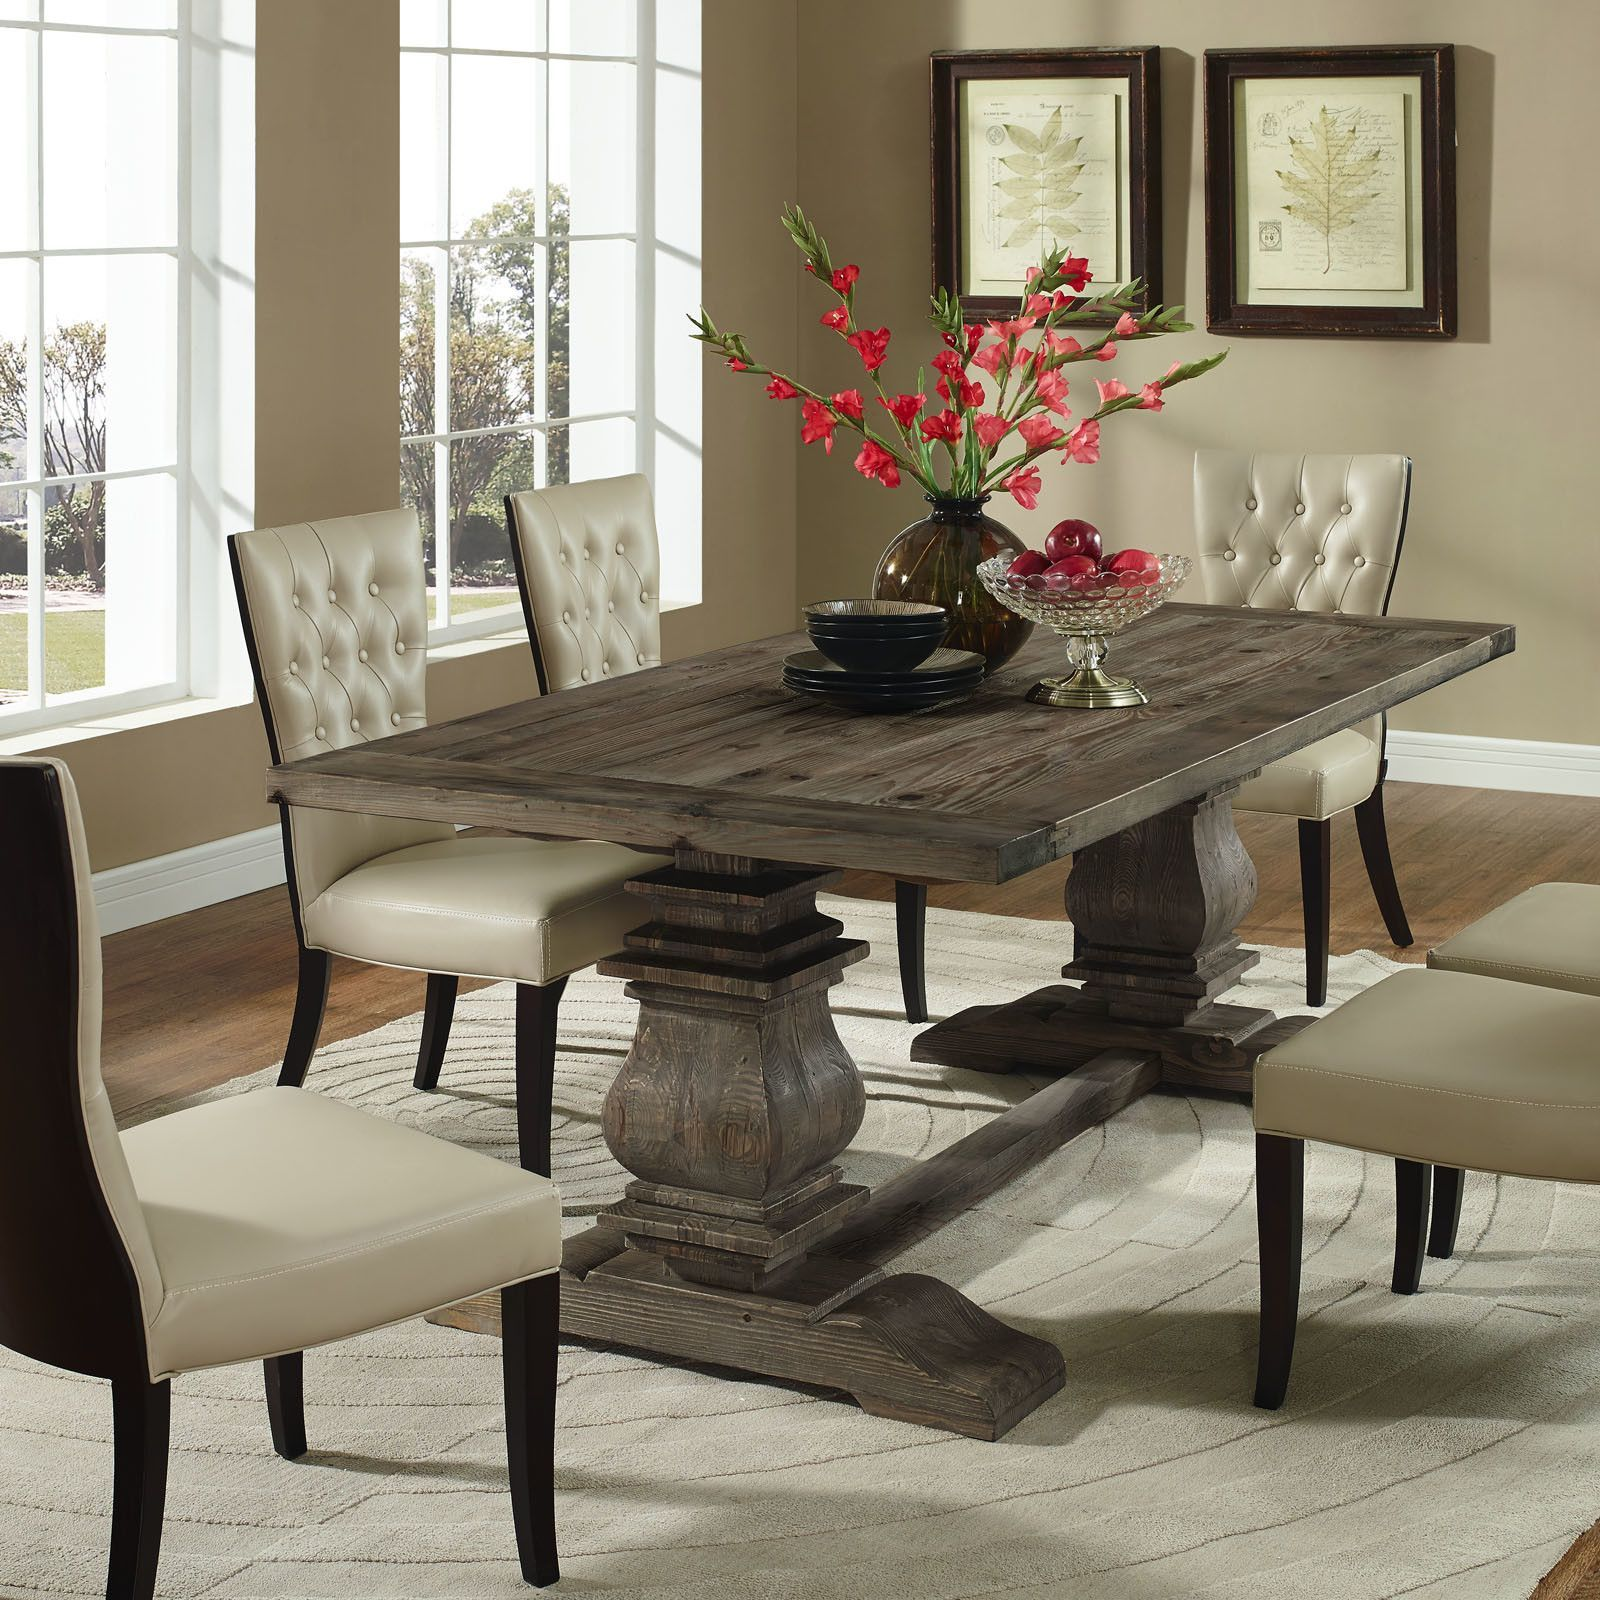 Modway List Dining Table Dining Room Table Centerpieces Rustic Dining Room Rustic Farmhouse Dining Table